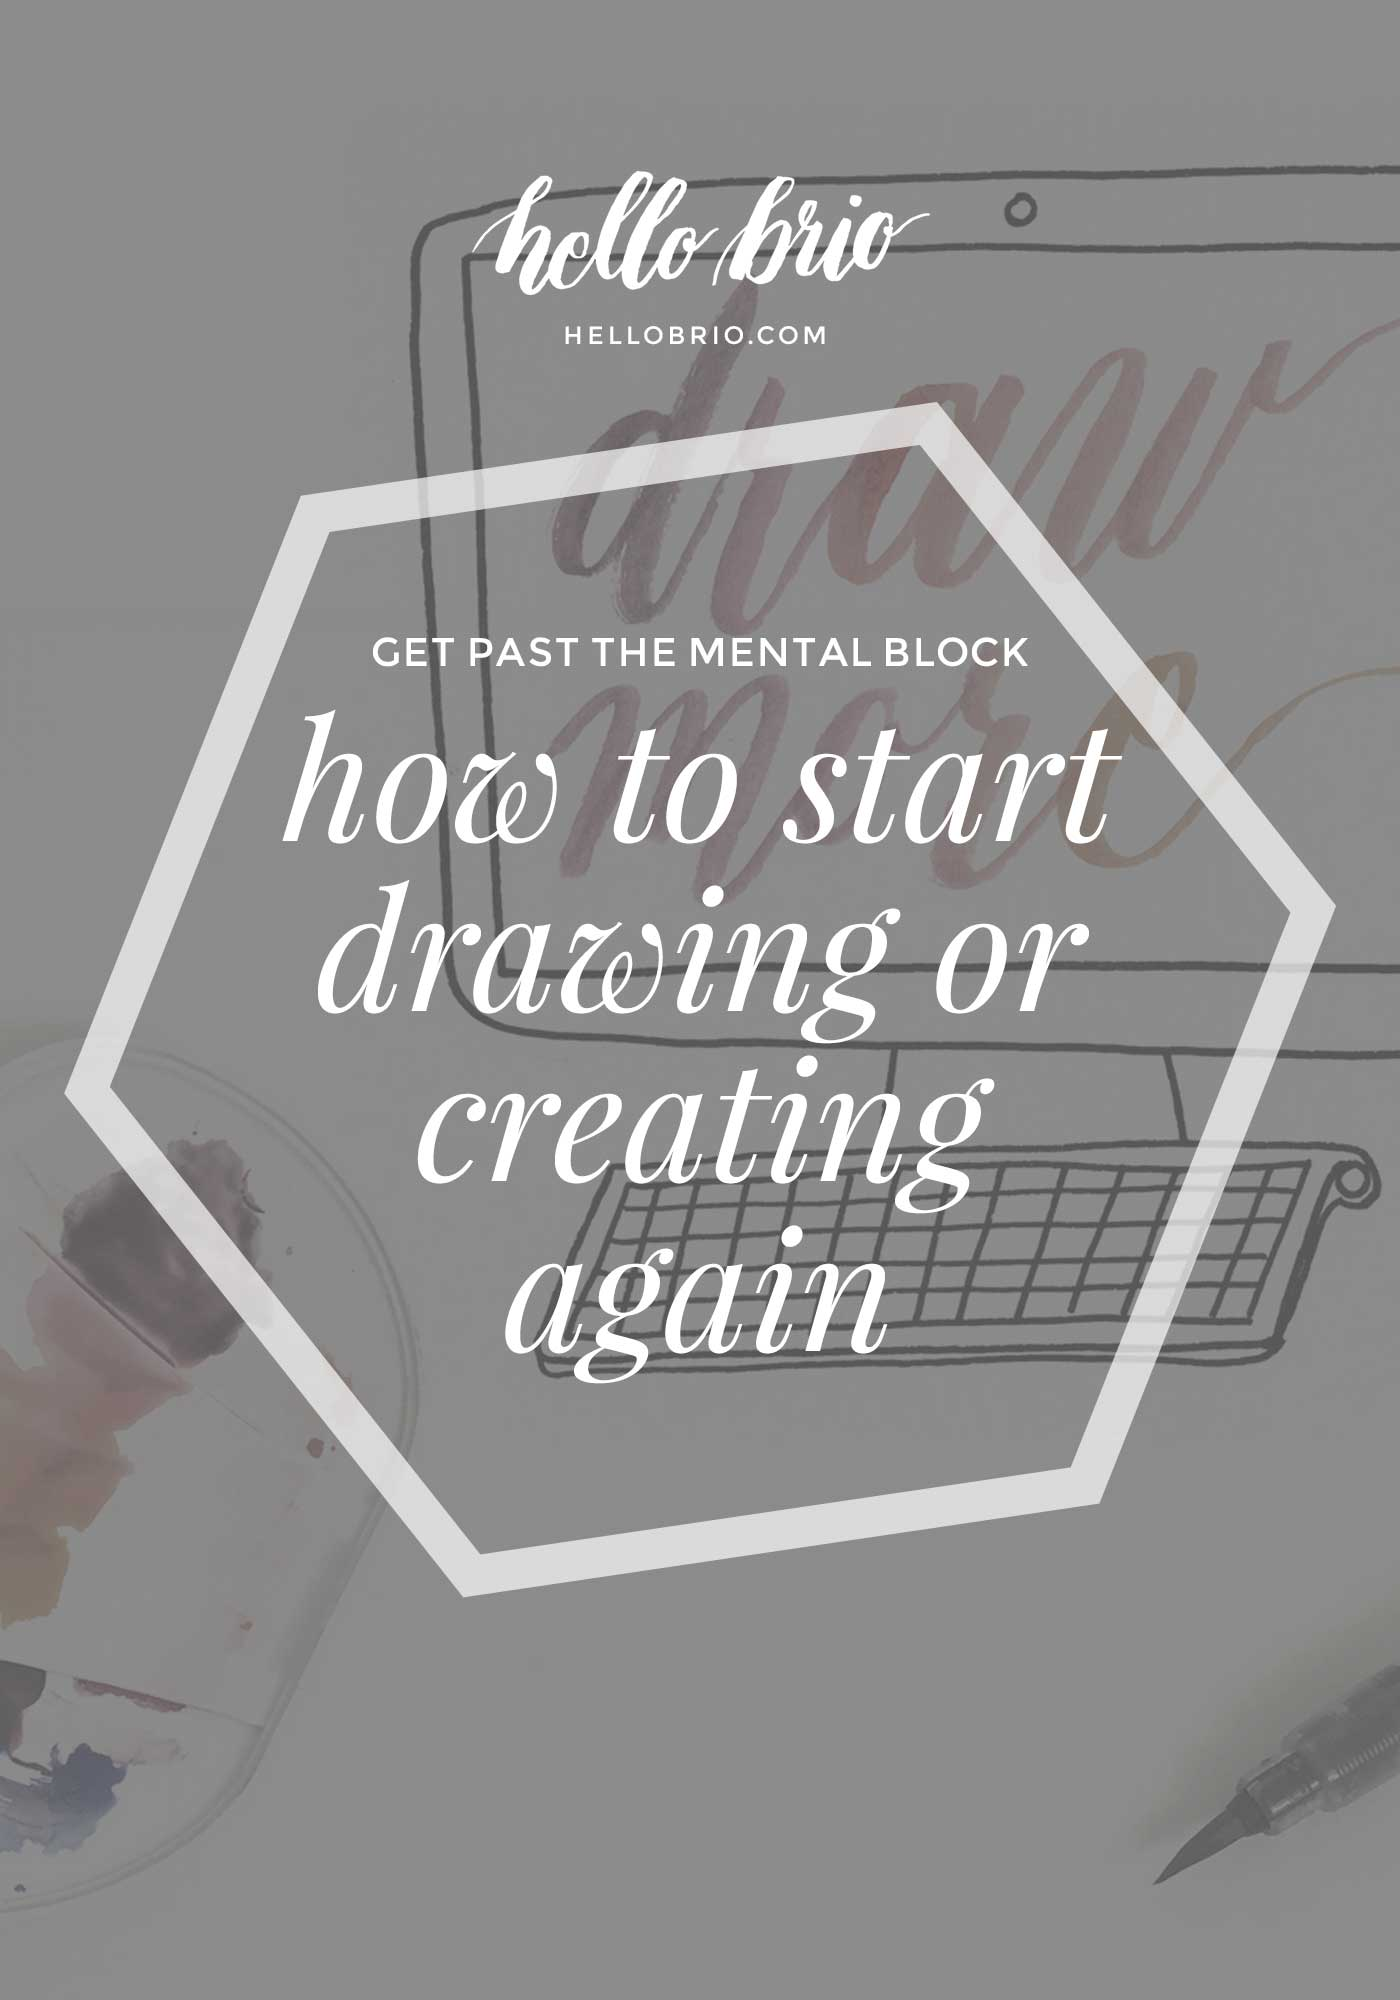 How to start drawing or creating again